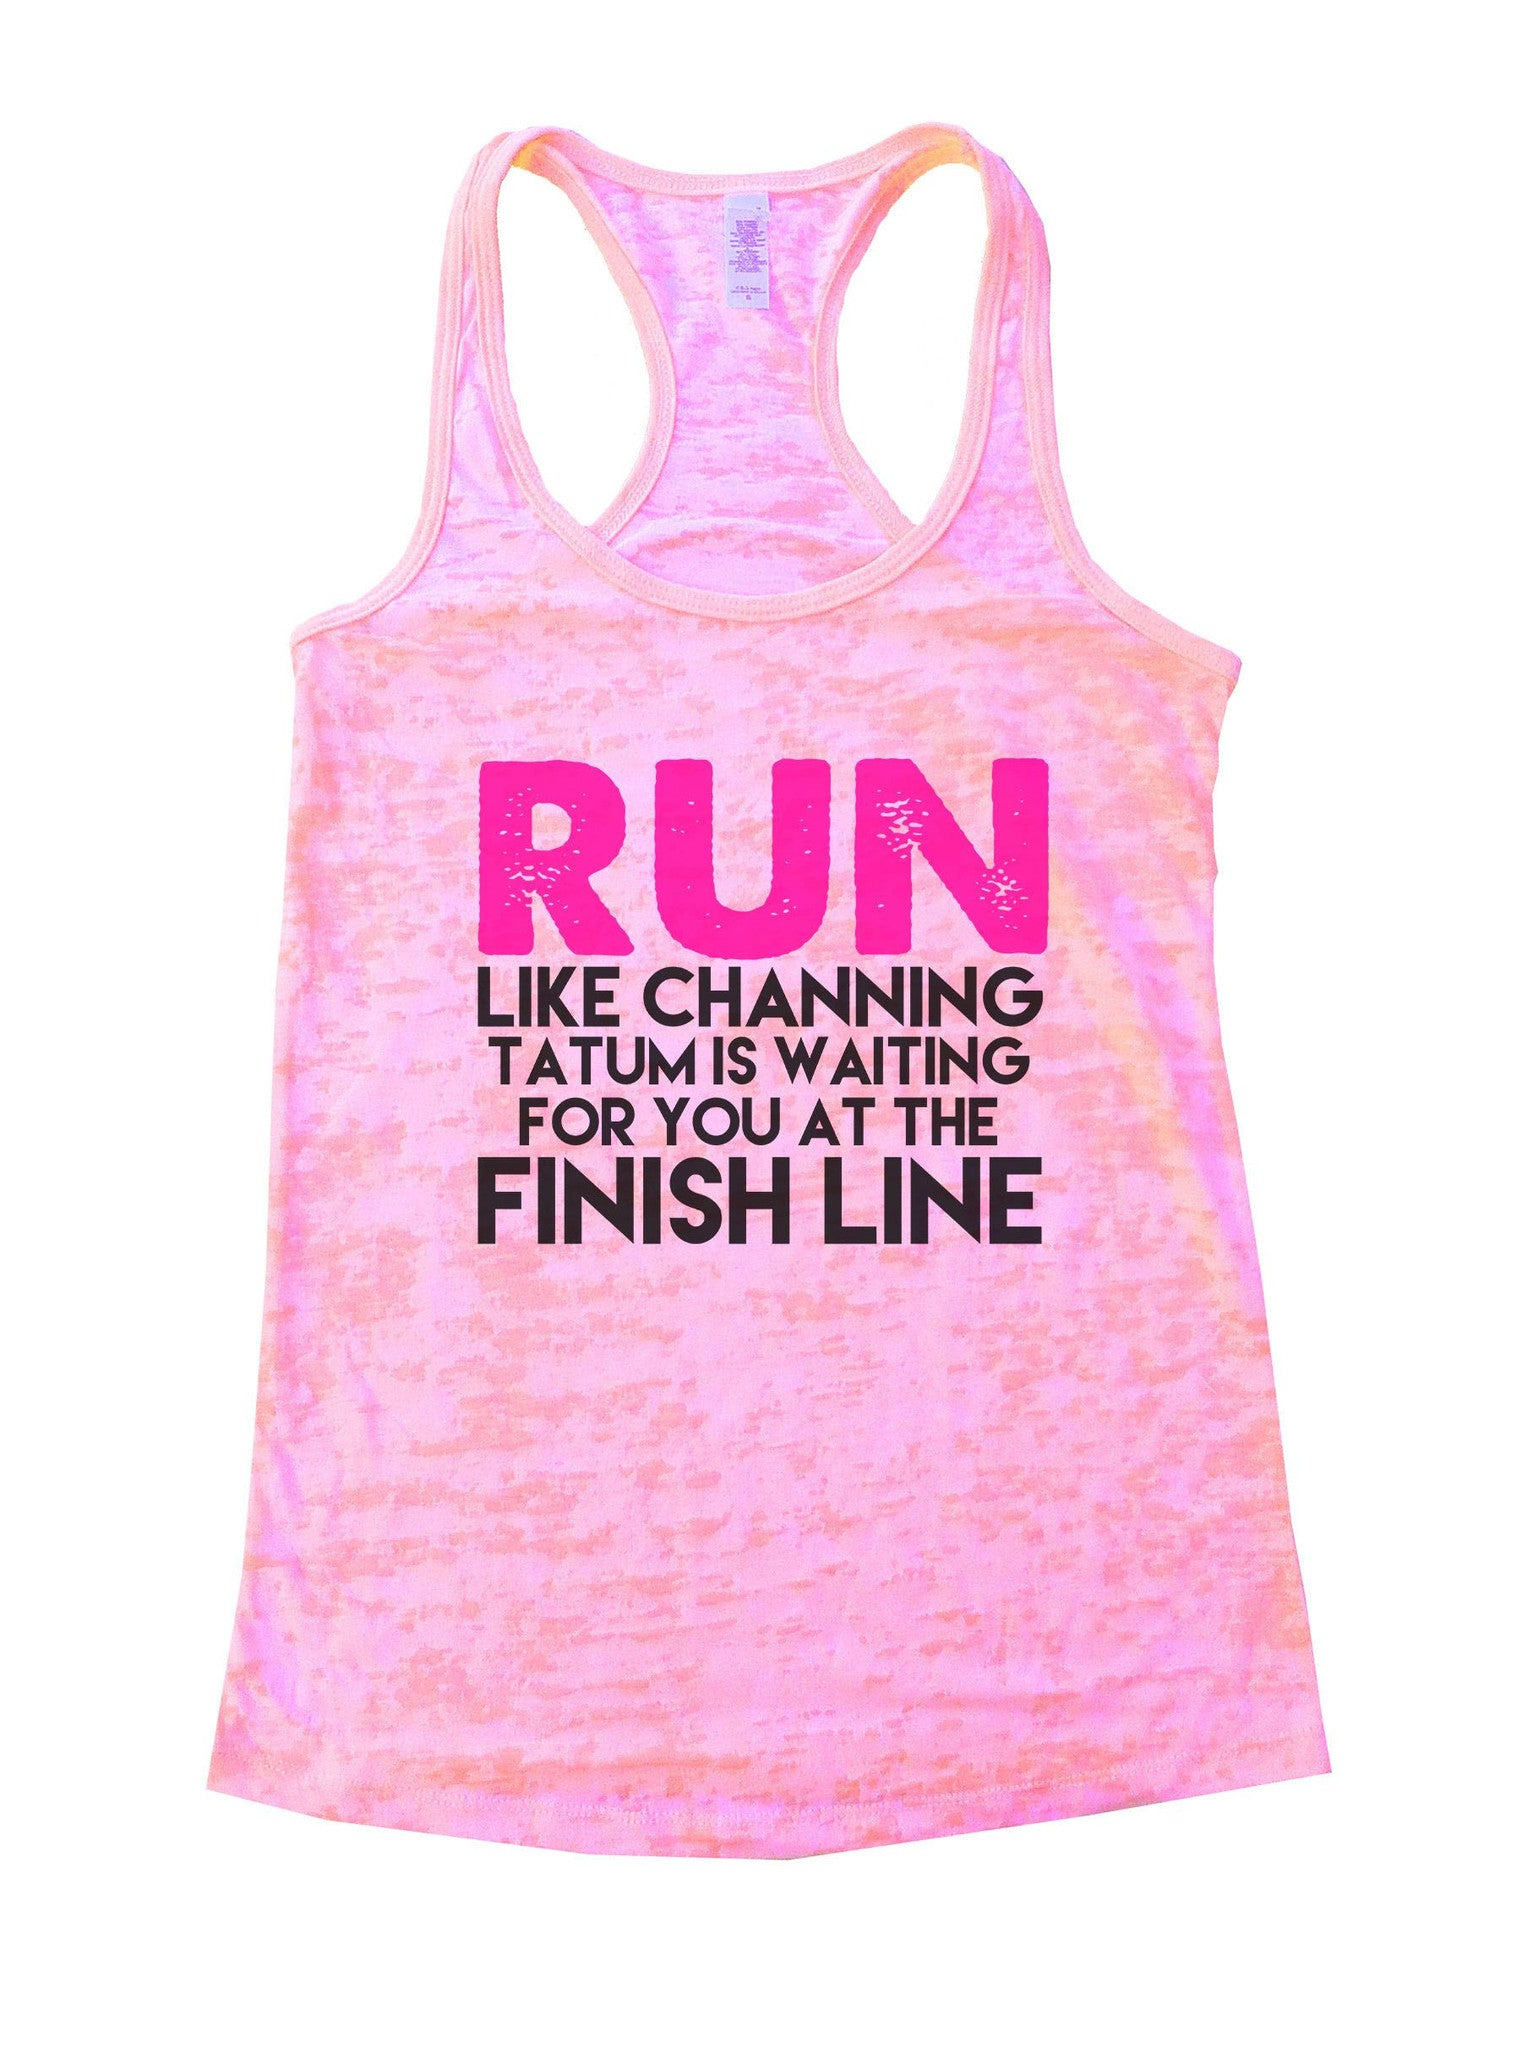 Run Like Channing Tatum Is Waiting For You At The Finish Line Burnout Tank Top By BurnoutTankTops.com - 872 - Funny Shirts Tank Tops Burnouts and Triblends  - 1